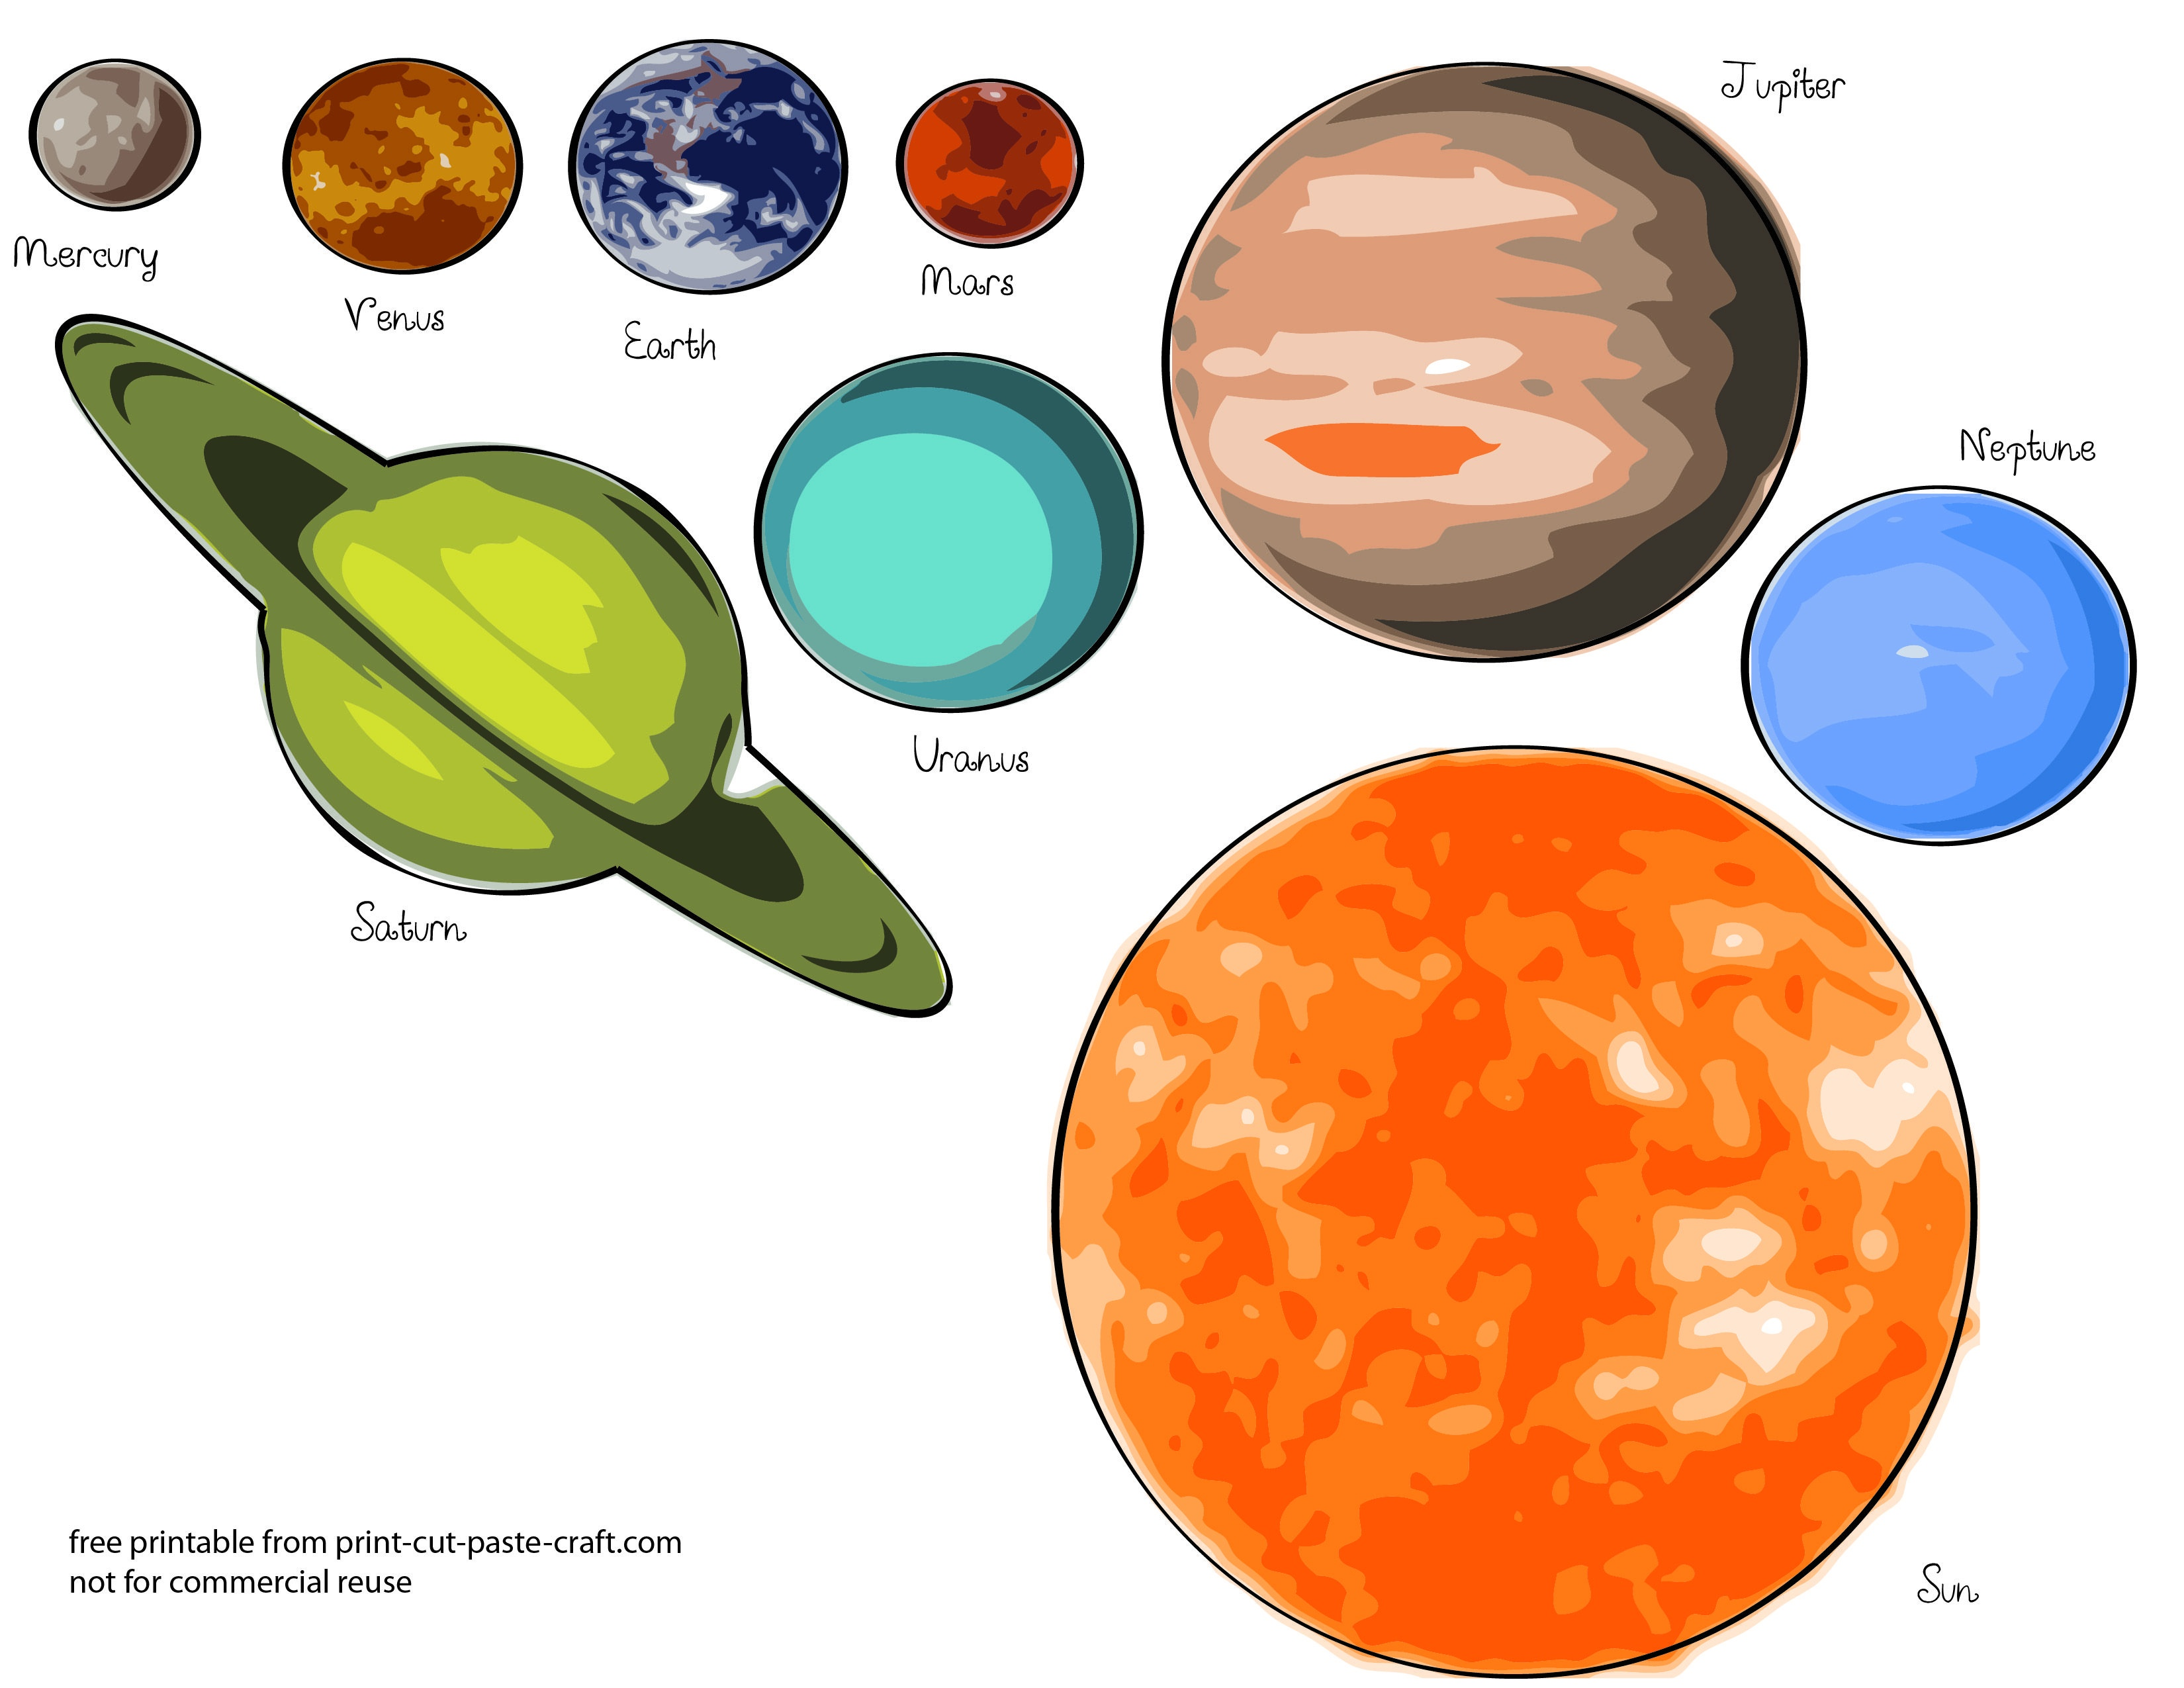 Free Printables Planets | Free Printable Solar System Model For Kids - Free Printable Solar System Flashcards